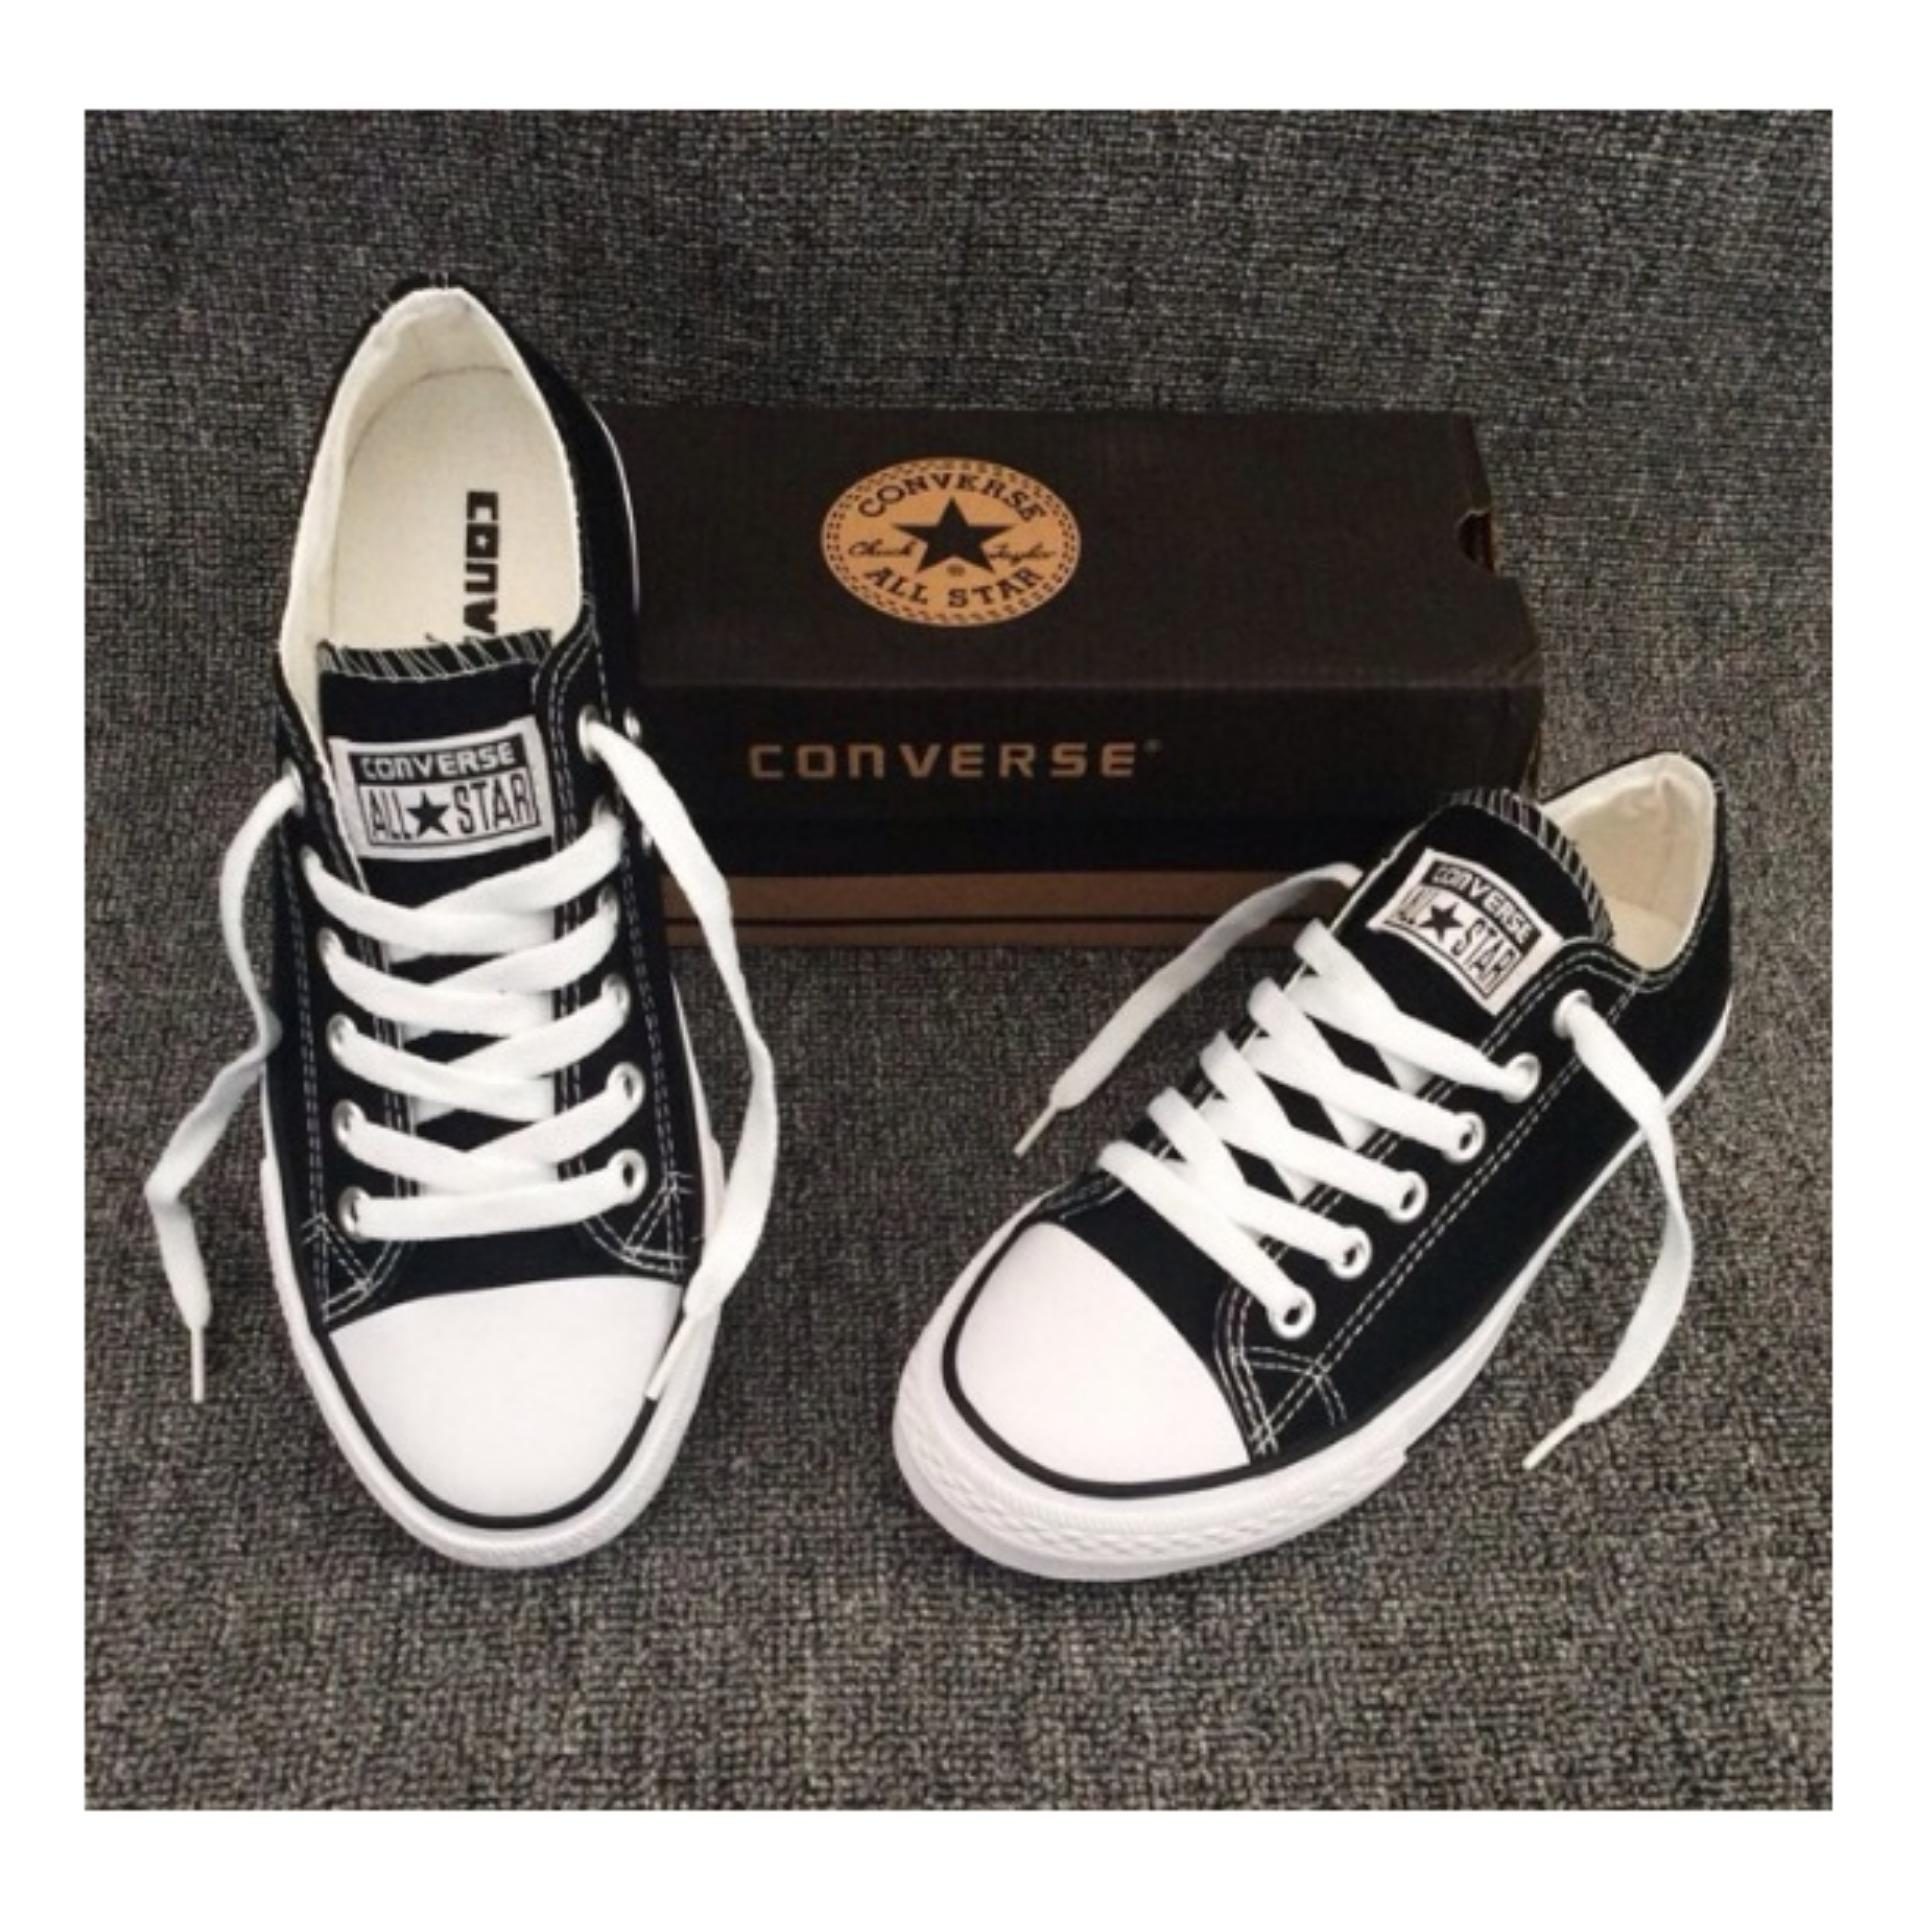 Shoes for Women for sale - Womens Fashion Shoes online brands ... 028a622837f5e